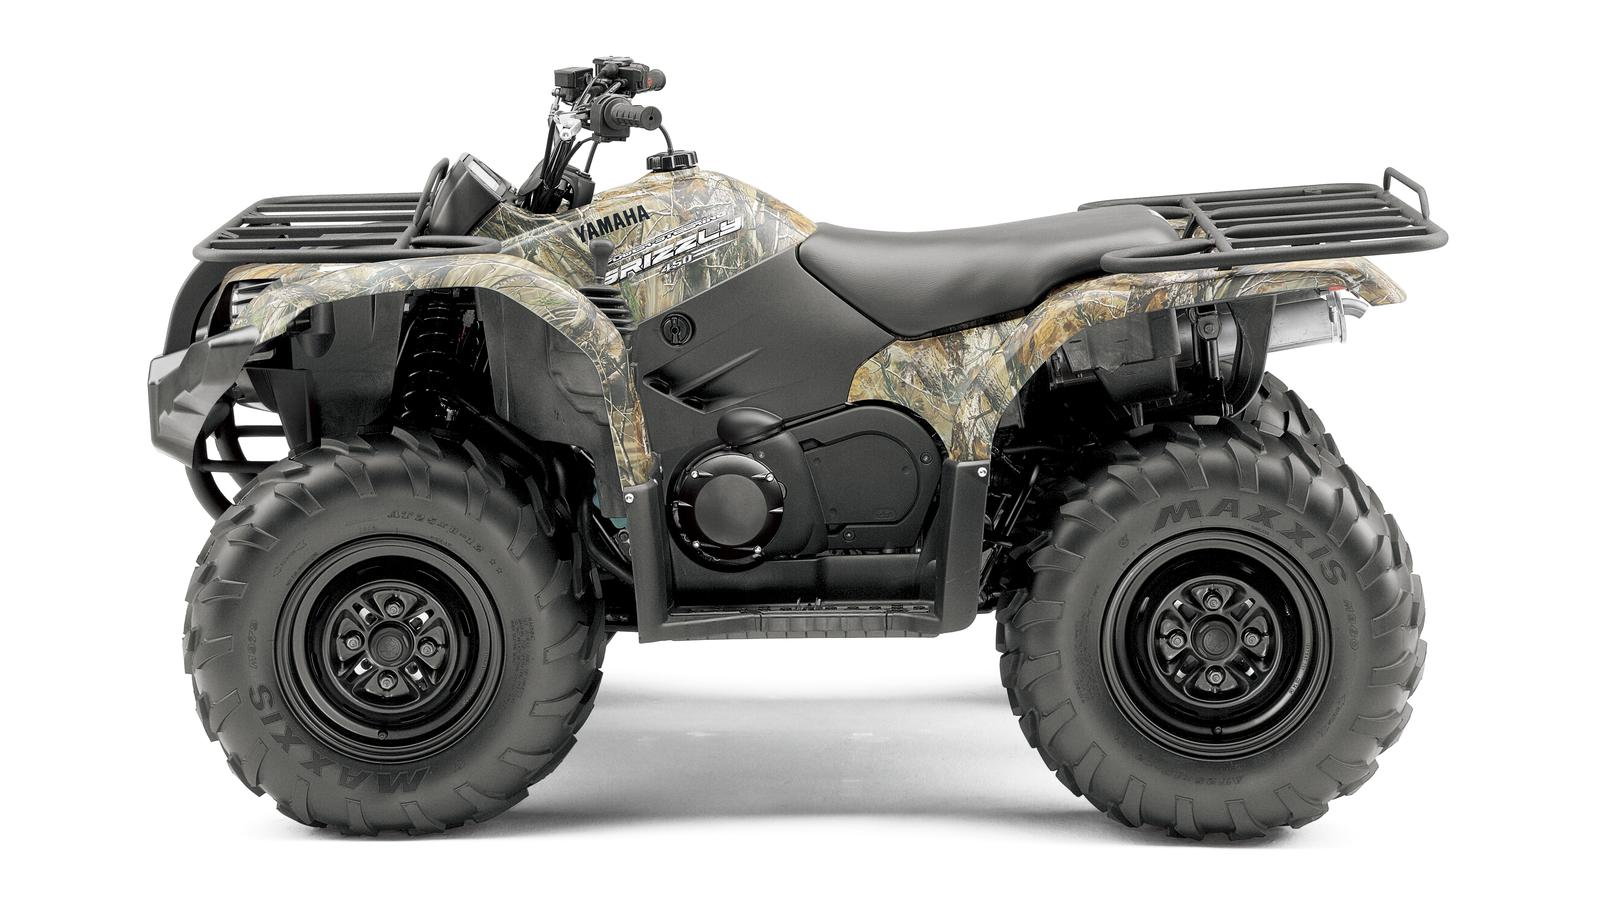 YAMAHA Grizzly 450  2011 photo 9